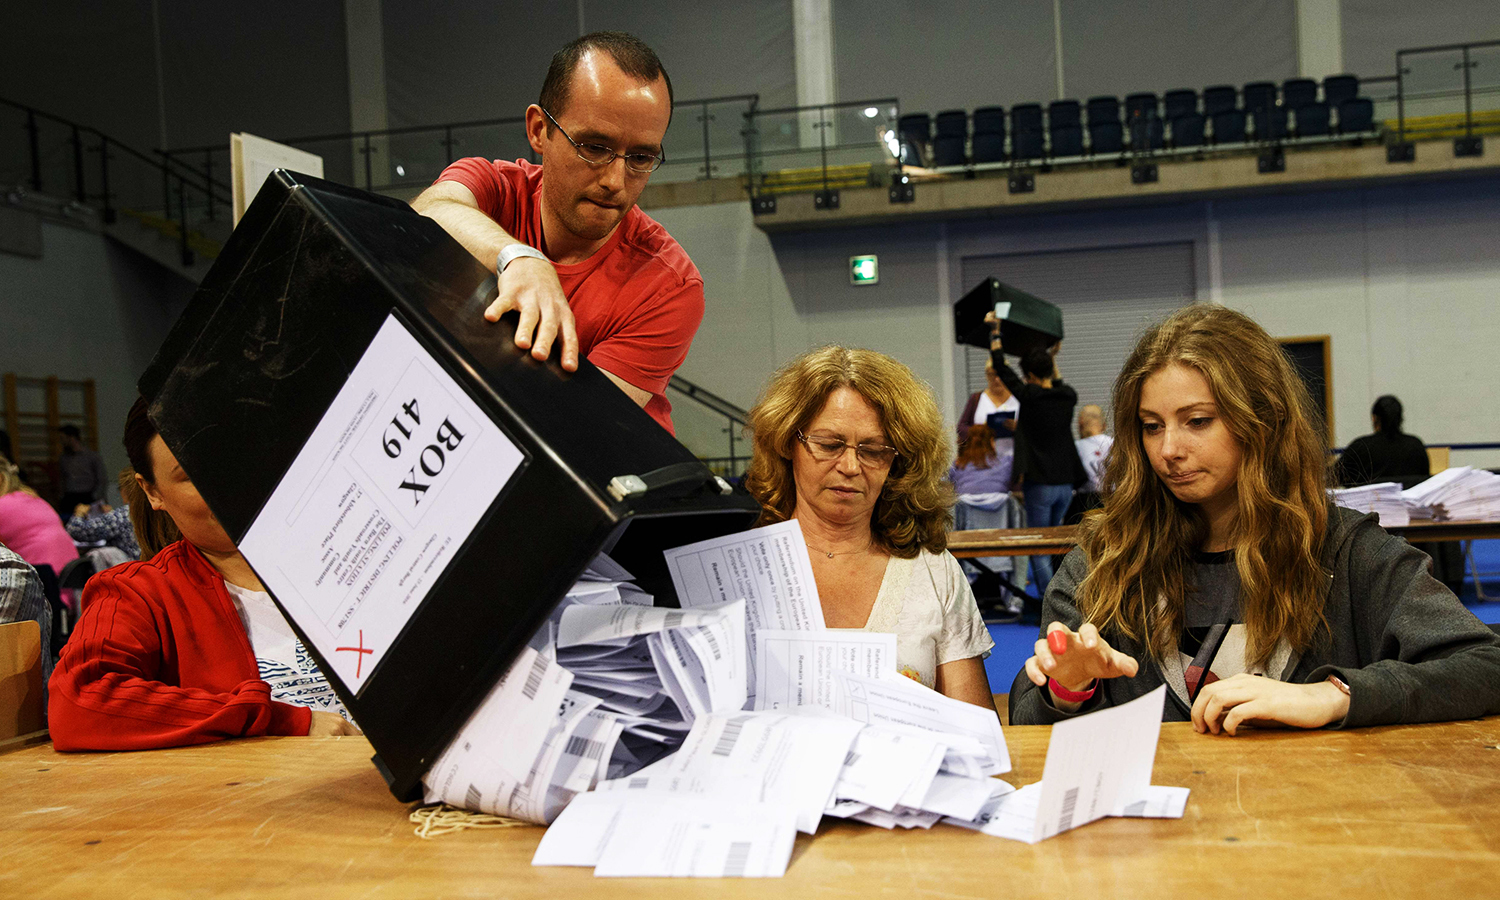 Staff count ballot papers at the Glasgow count centre at the Emirates Arena, Glasgow, Scotland, on June 23, 2016 after polls closed in the referendum on whether the UK will remain or stay in the European Union (EU). Millions of Britons began voting Thursday in a bitterly-fought, knife-edge referendum that could tear up the island nation's EU membership and spark the greatest emergency of the bloc's 60-year history. / AFP PHOTO / Robert Perry